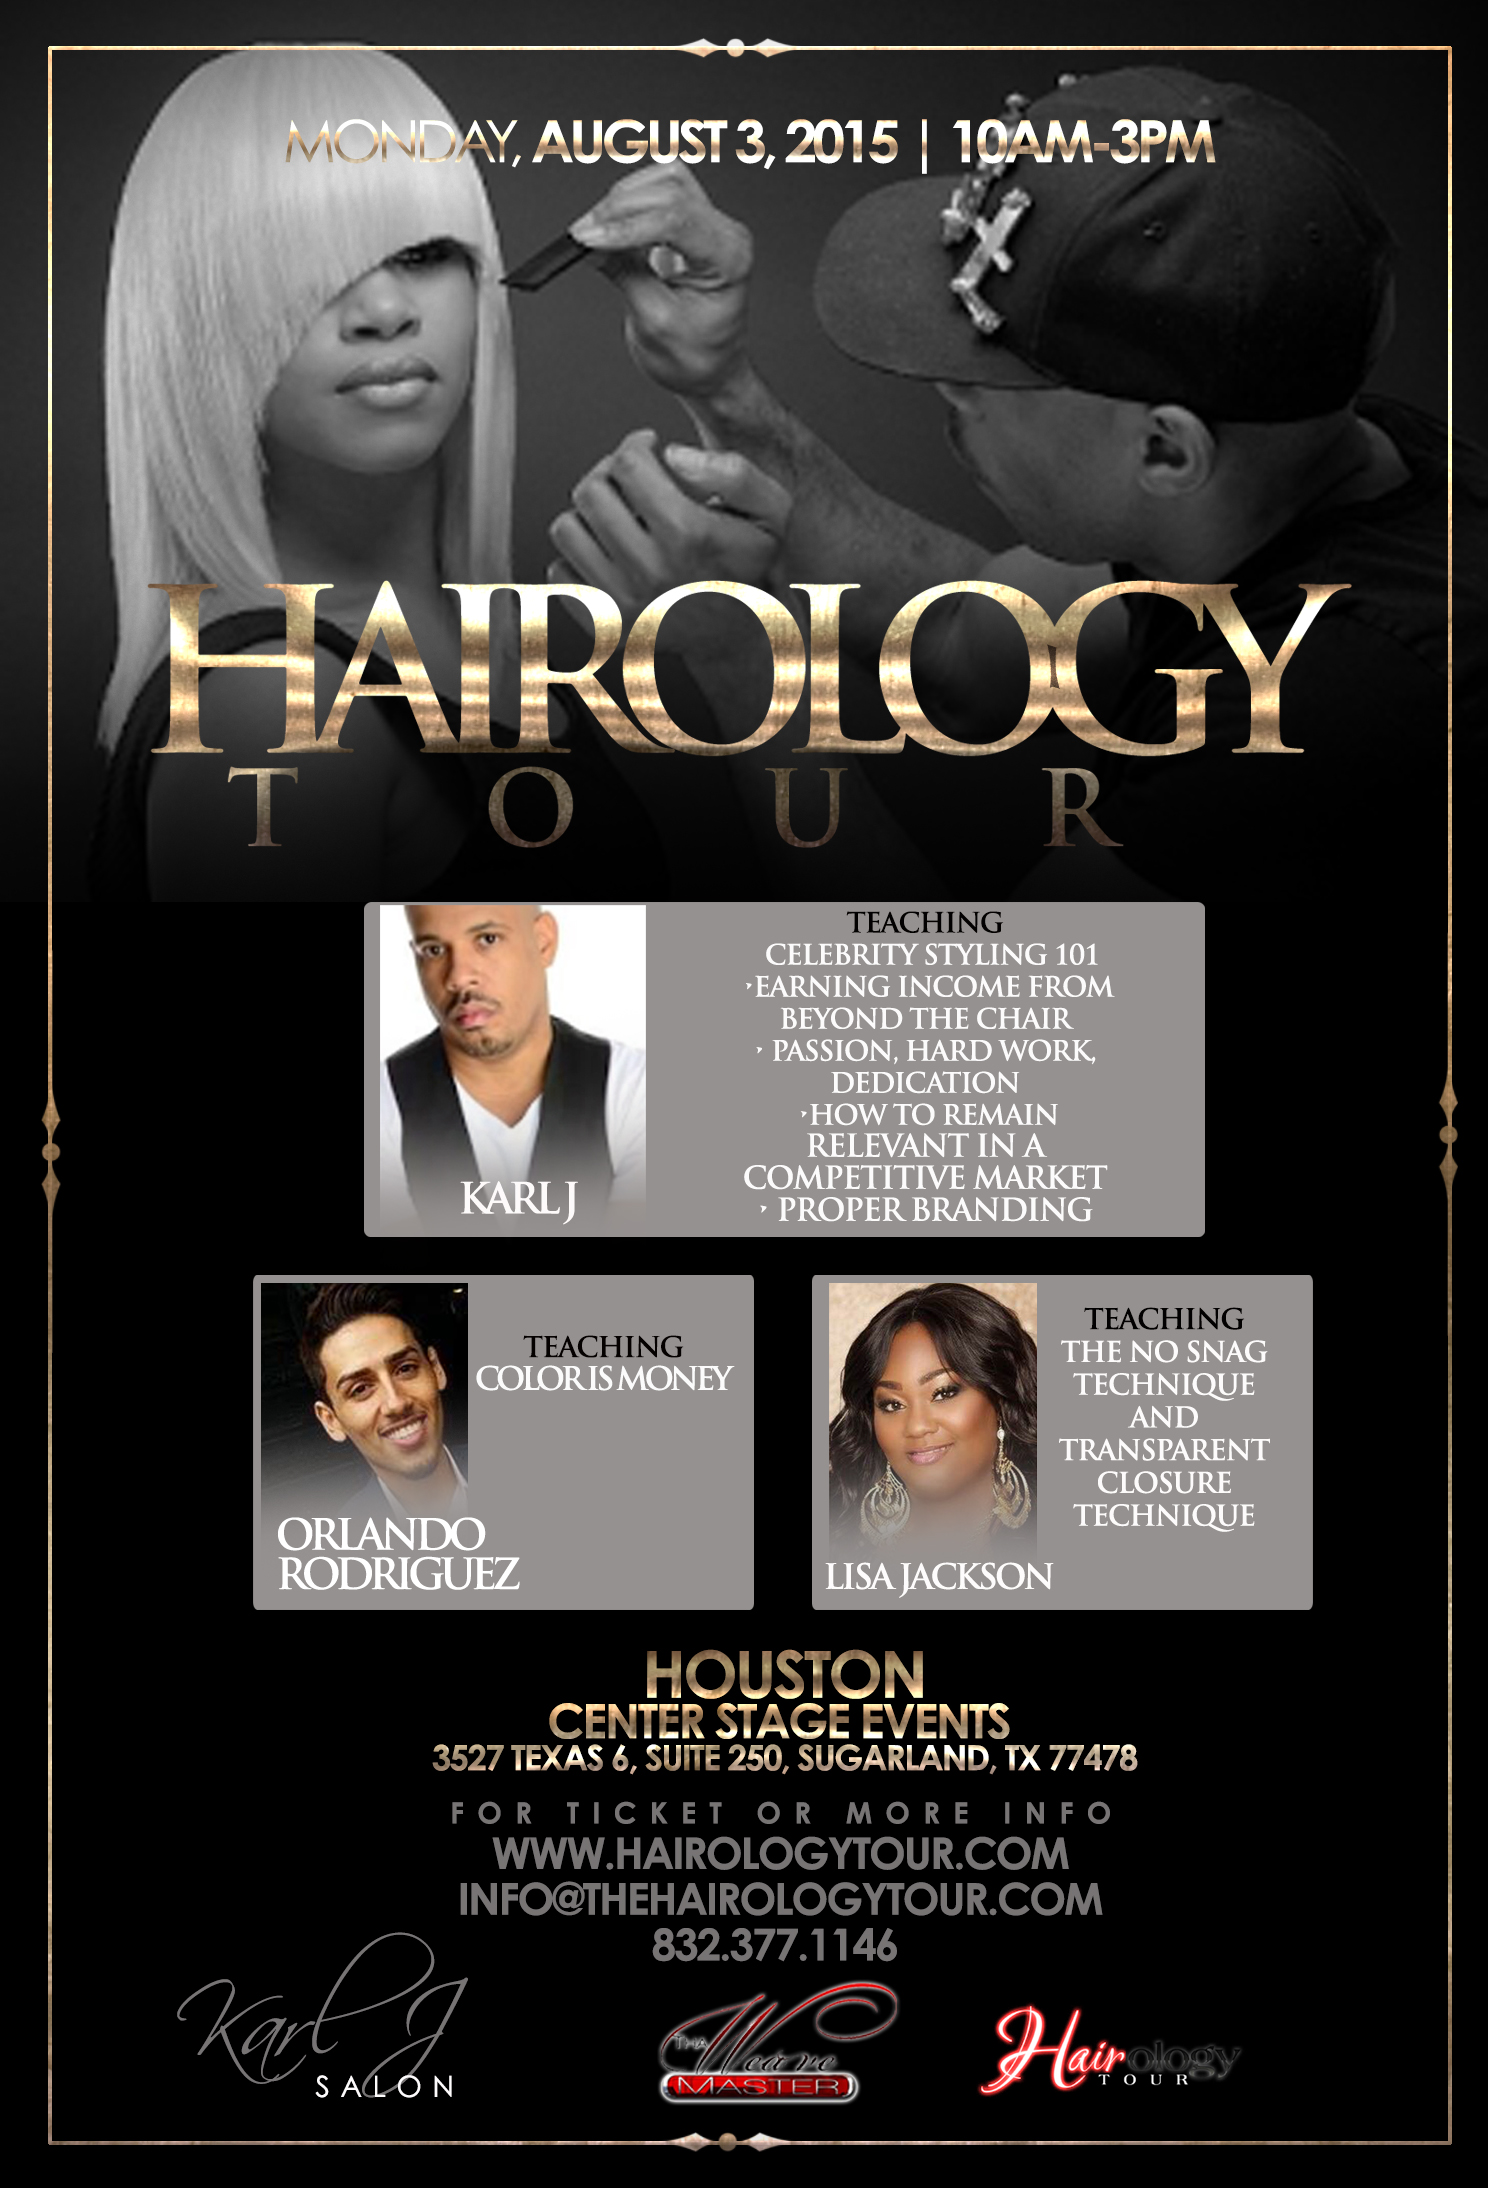 Hairology Tour with Karl J in Houston Texas